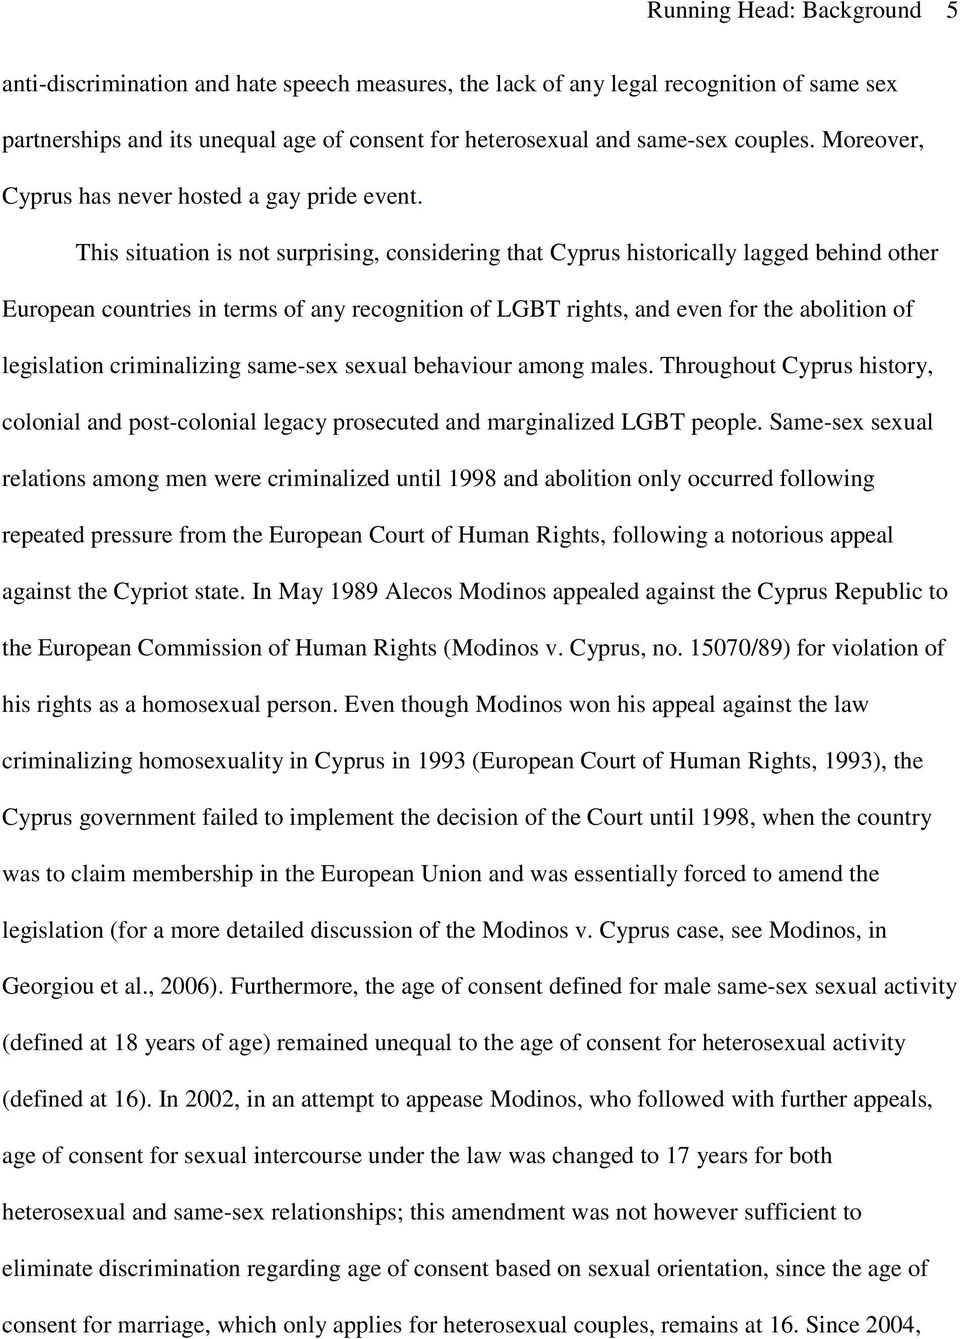 This situation is not surprising, considering that Cyprus historically lagged behind other European countries in terms of any recognition of LGBT rights, and even for the abolition of legislation